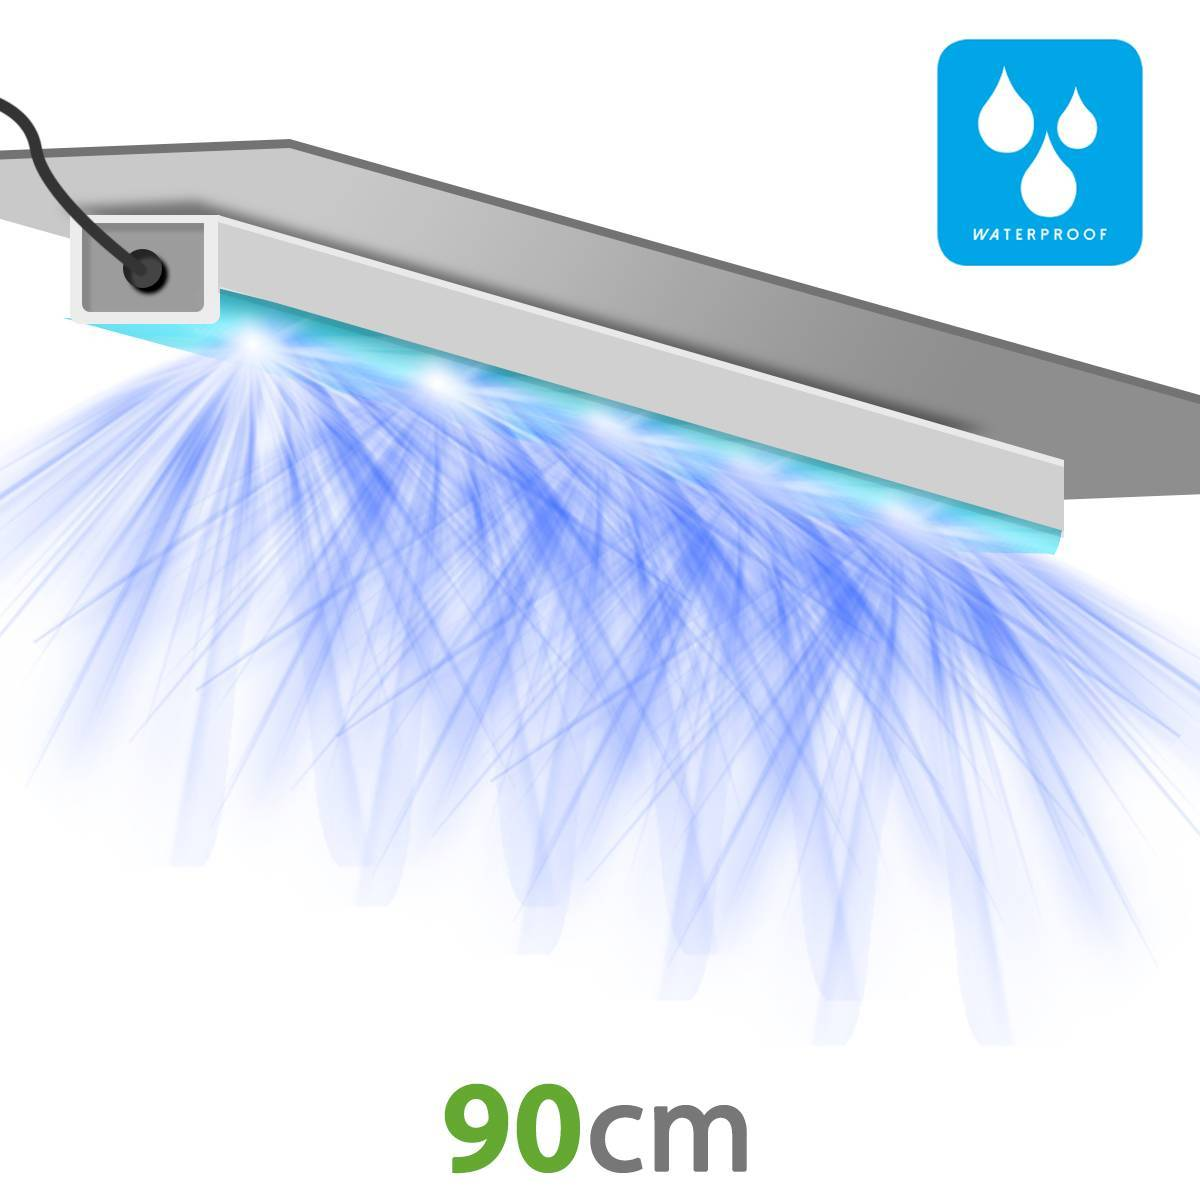 Pack x2 - SpectraB.2.G X300 - LED horticultural bars with flowering booster - CITIZEN - Growth and flowering